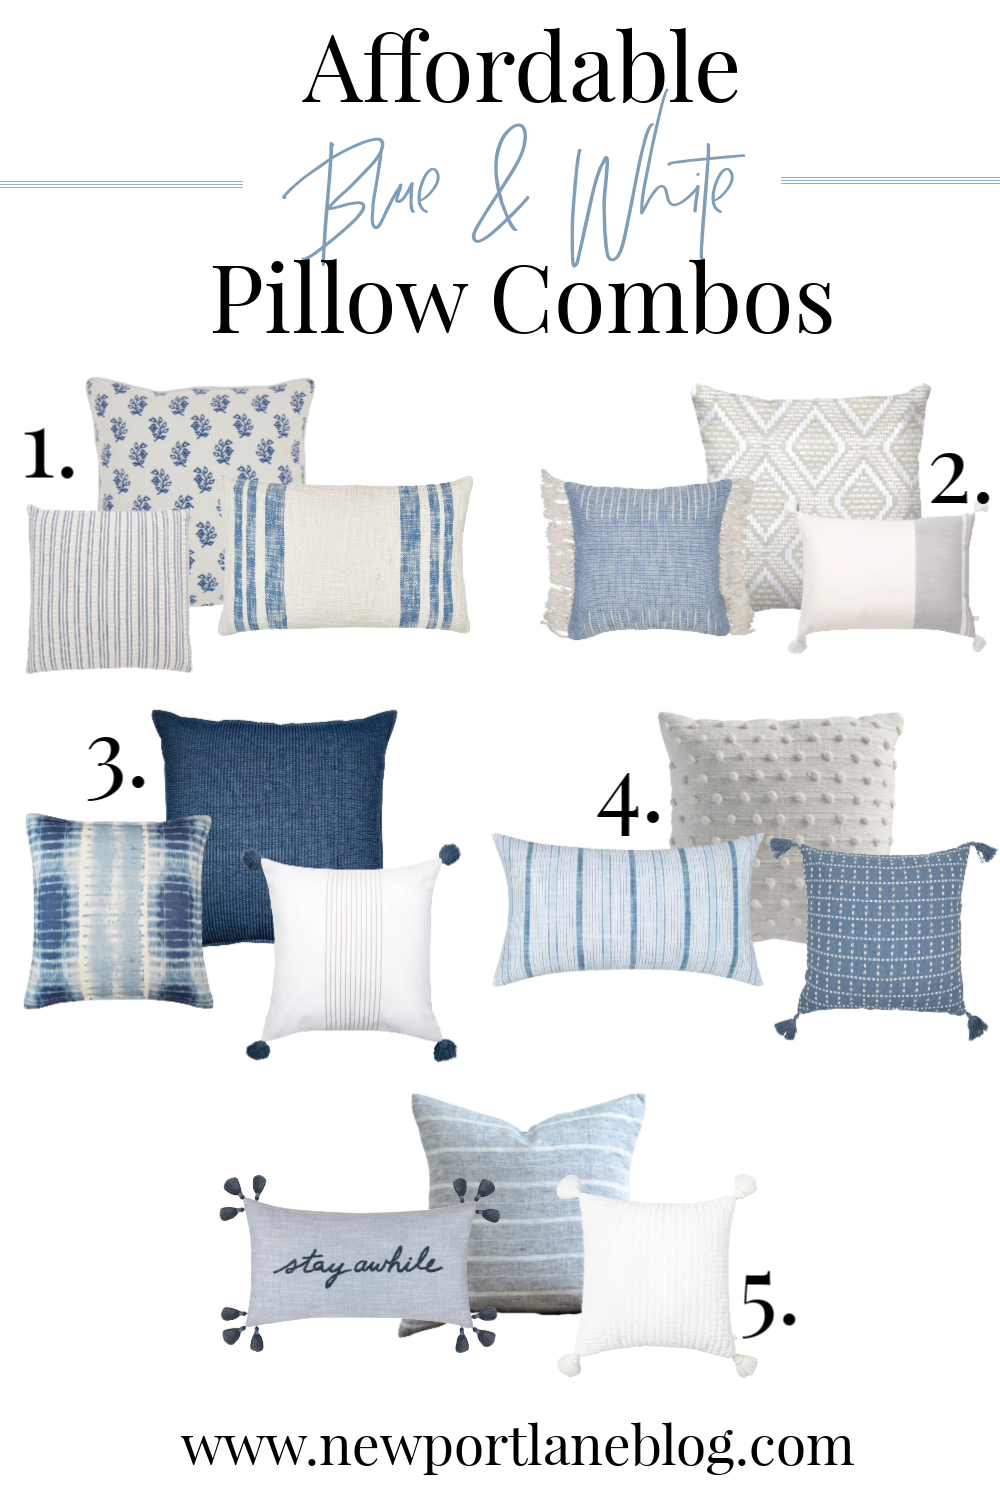 Affordable Blue and White Pillow Combos with a Coastal Touch